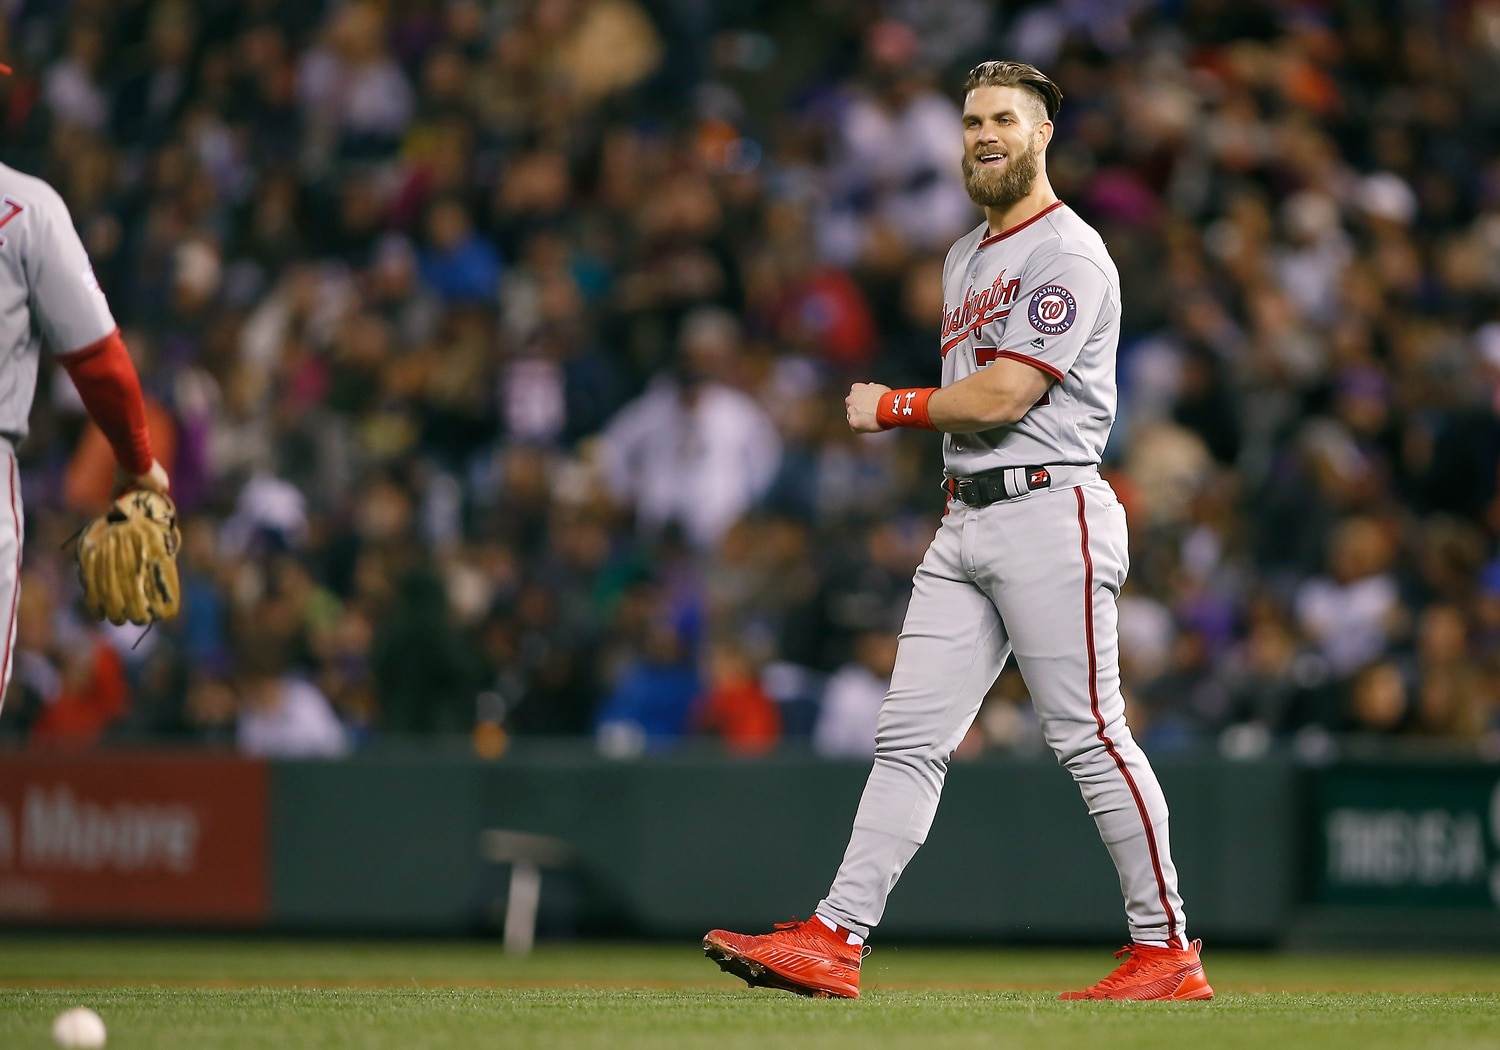 Lot of 'Momentum, Traction' on Harper Signing Soon with Phillies